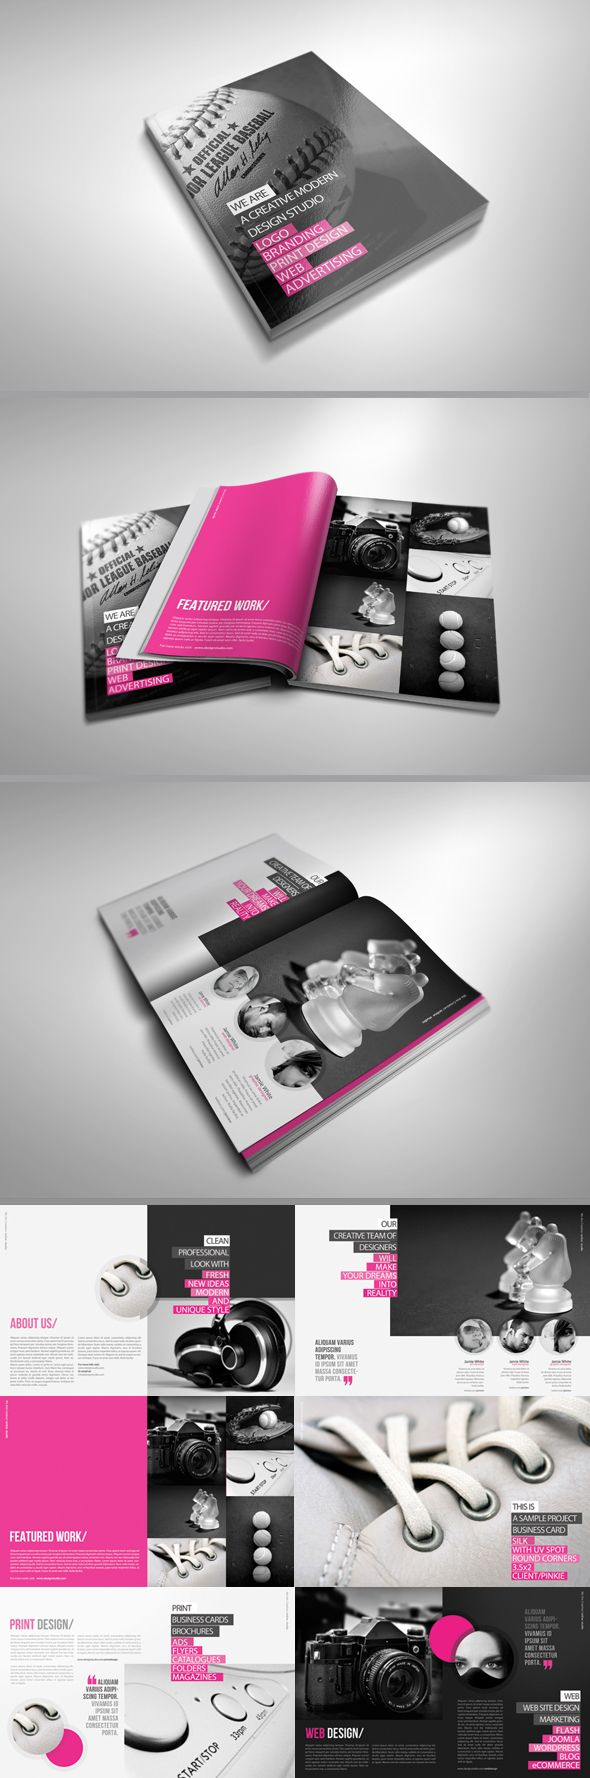 2 color brochure design